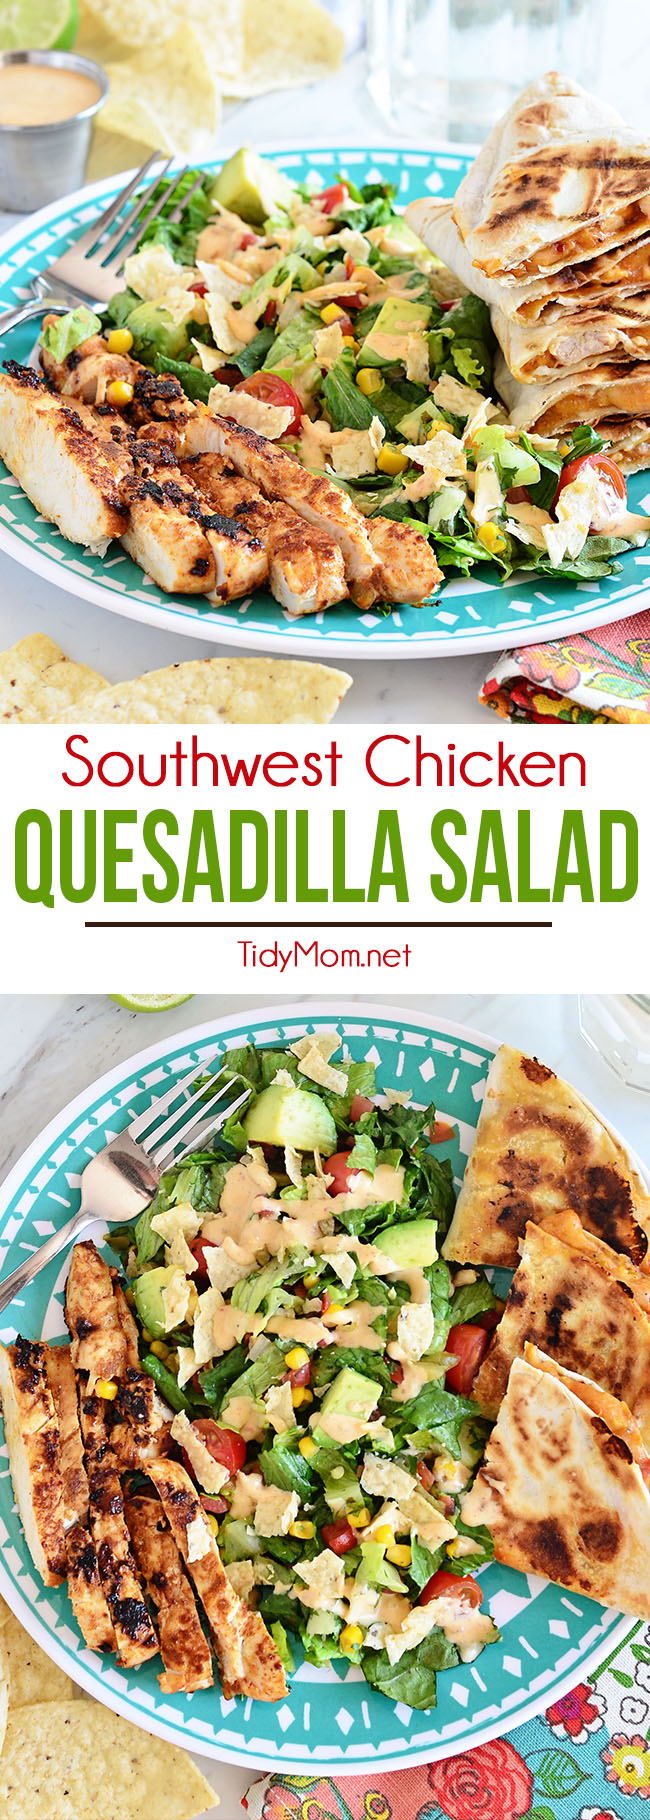 Southwest Chicken Quesadilla Salad is like an explosion in your mouth.  Super easy to throw together. Print the full recipe at TidyMom.net #salad #recipe #southwest #chicken #quesadilla